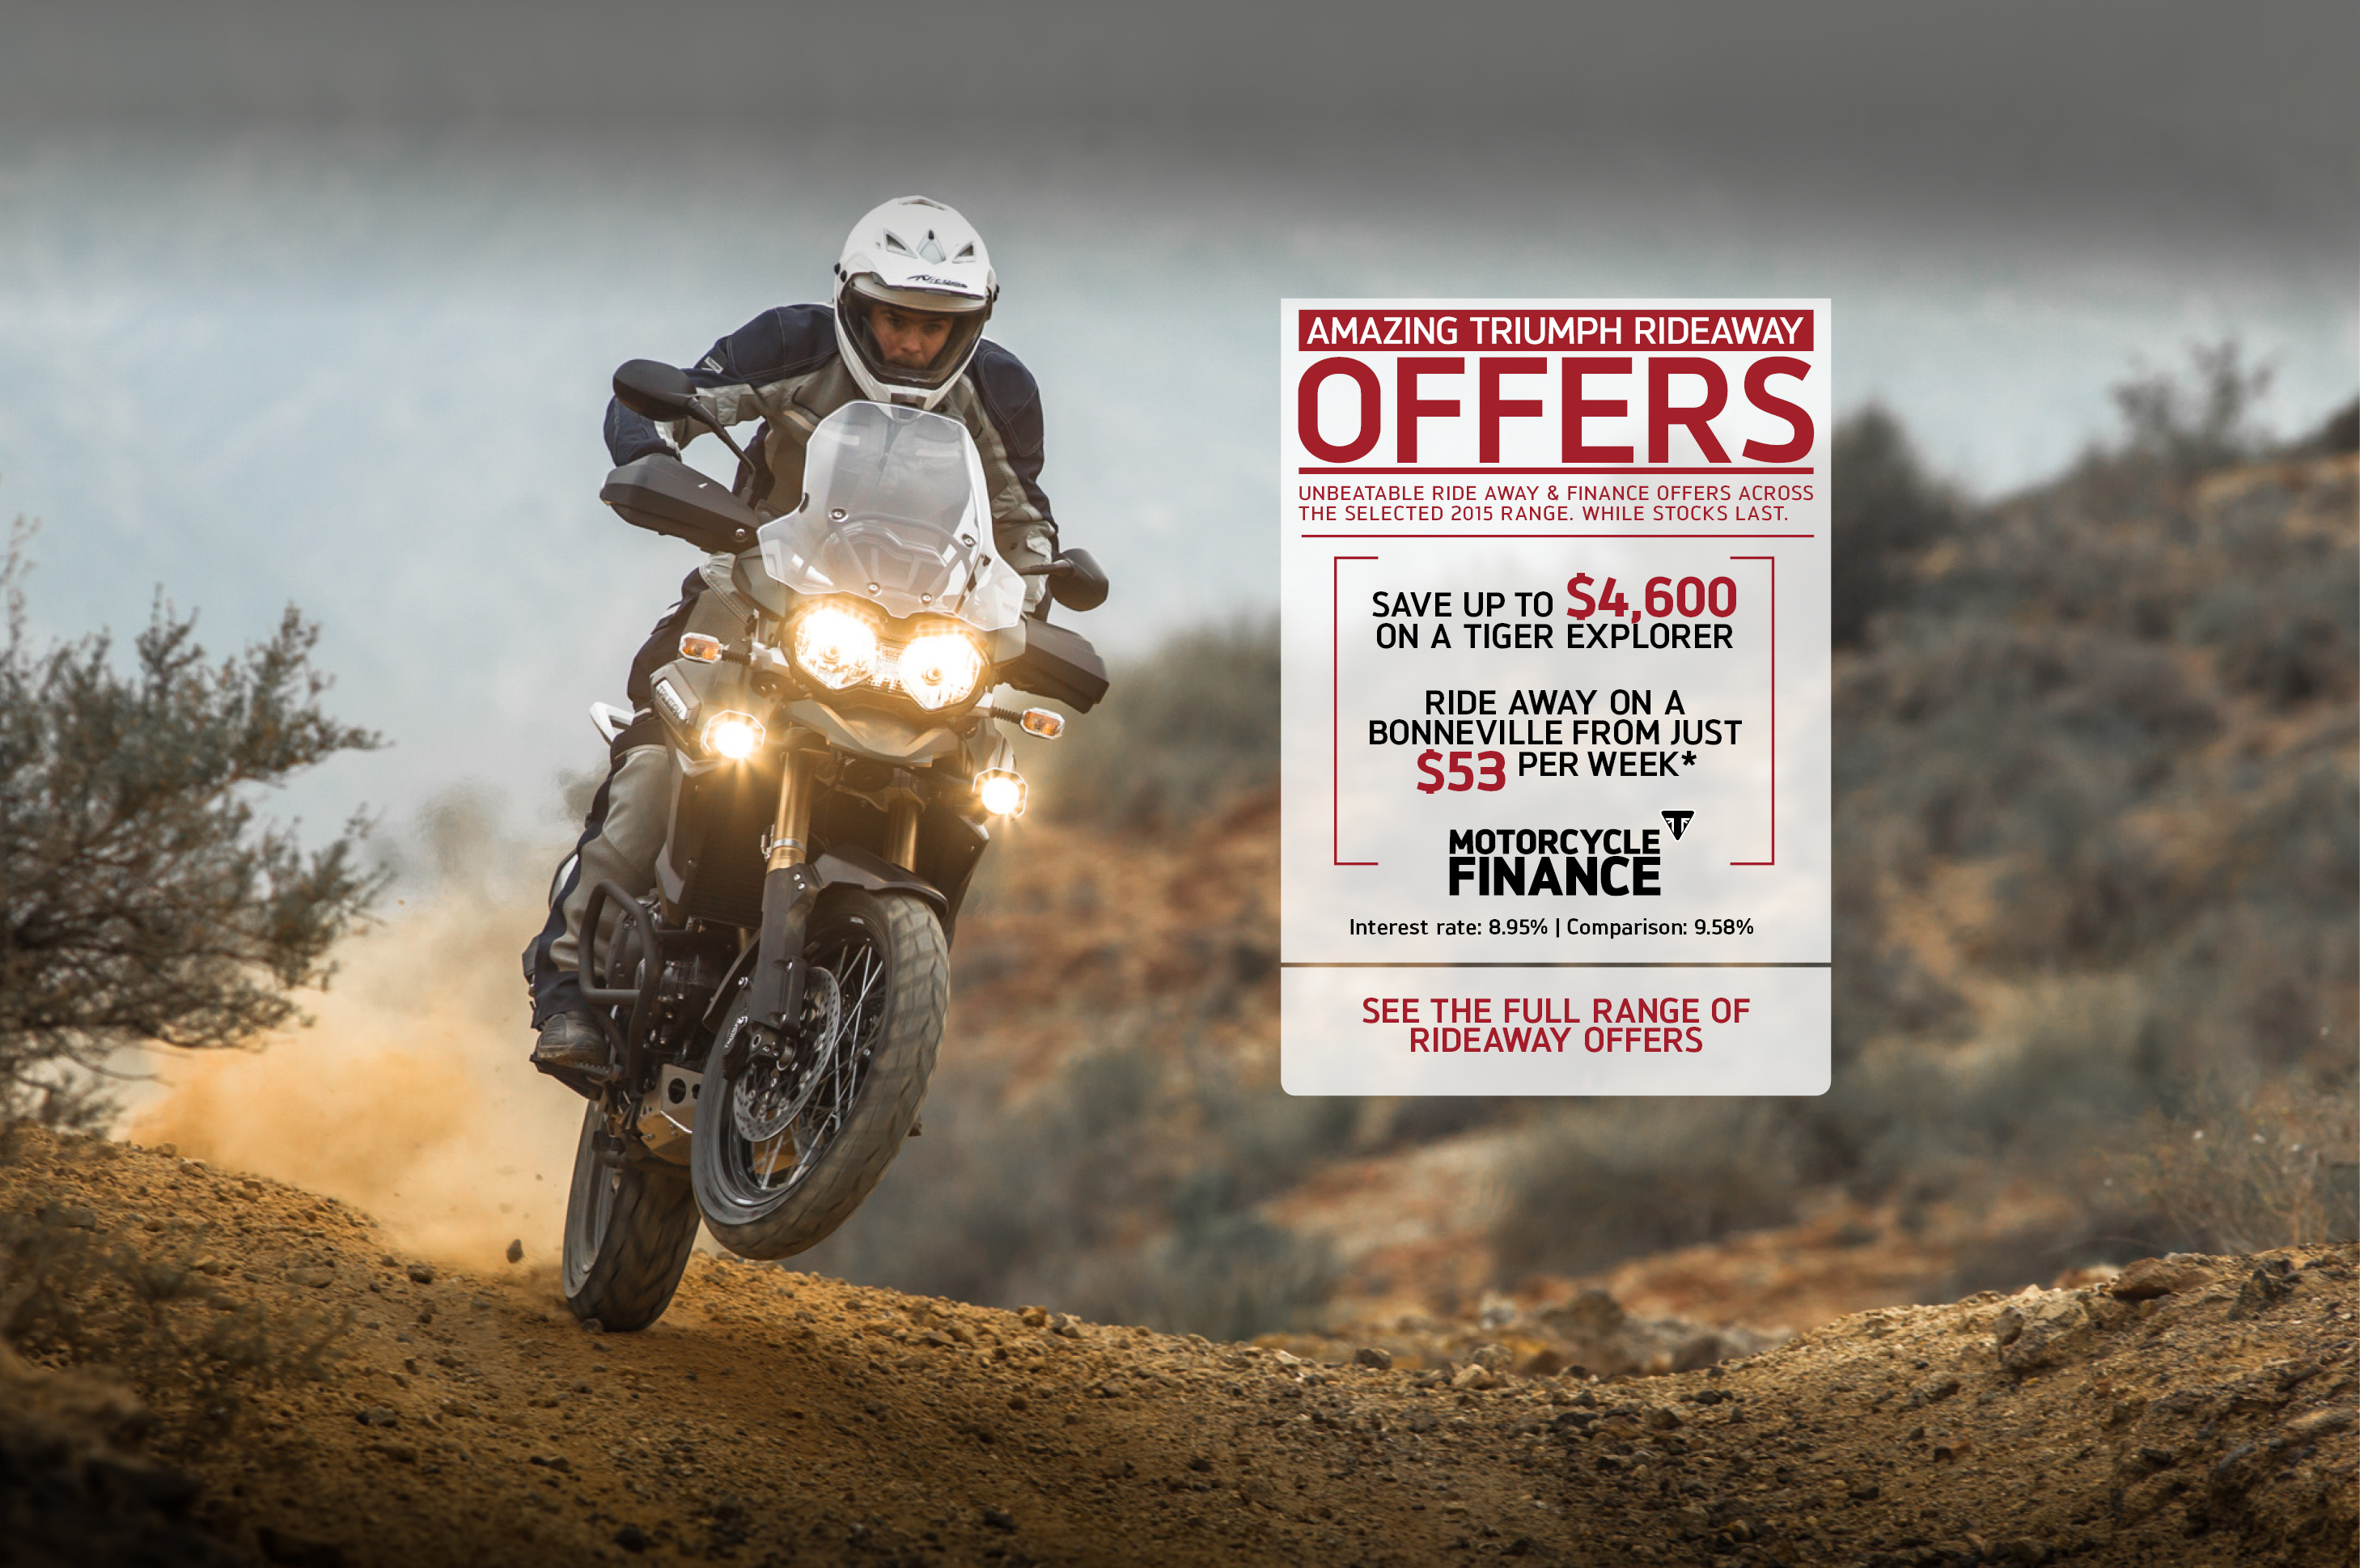 Amazing Triumph Rideaway Offers